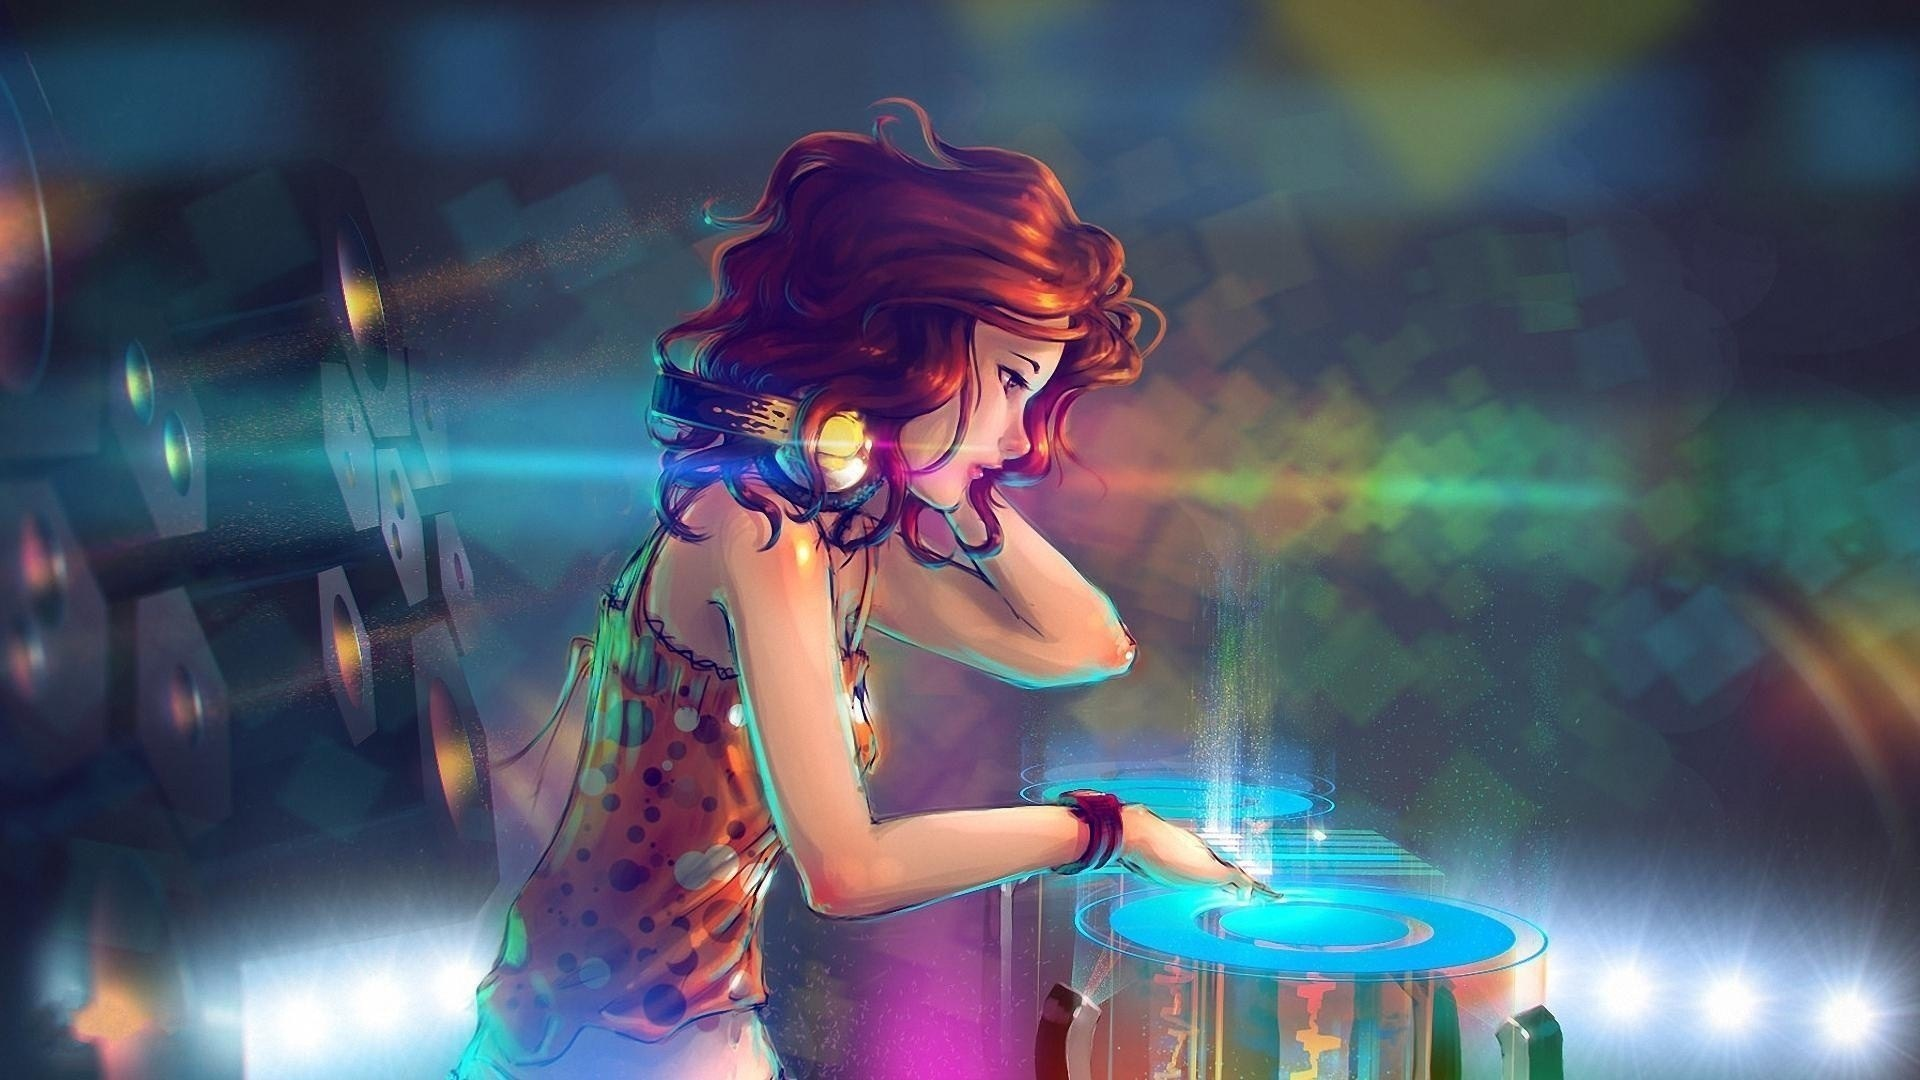 Anime Girl Headphones Mixing In The Club Music